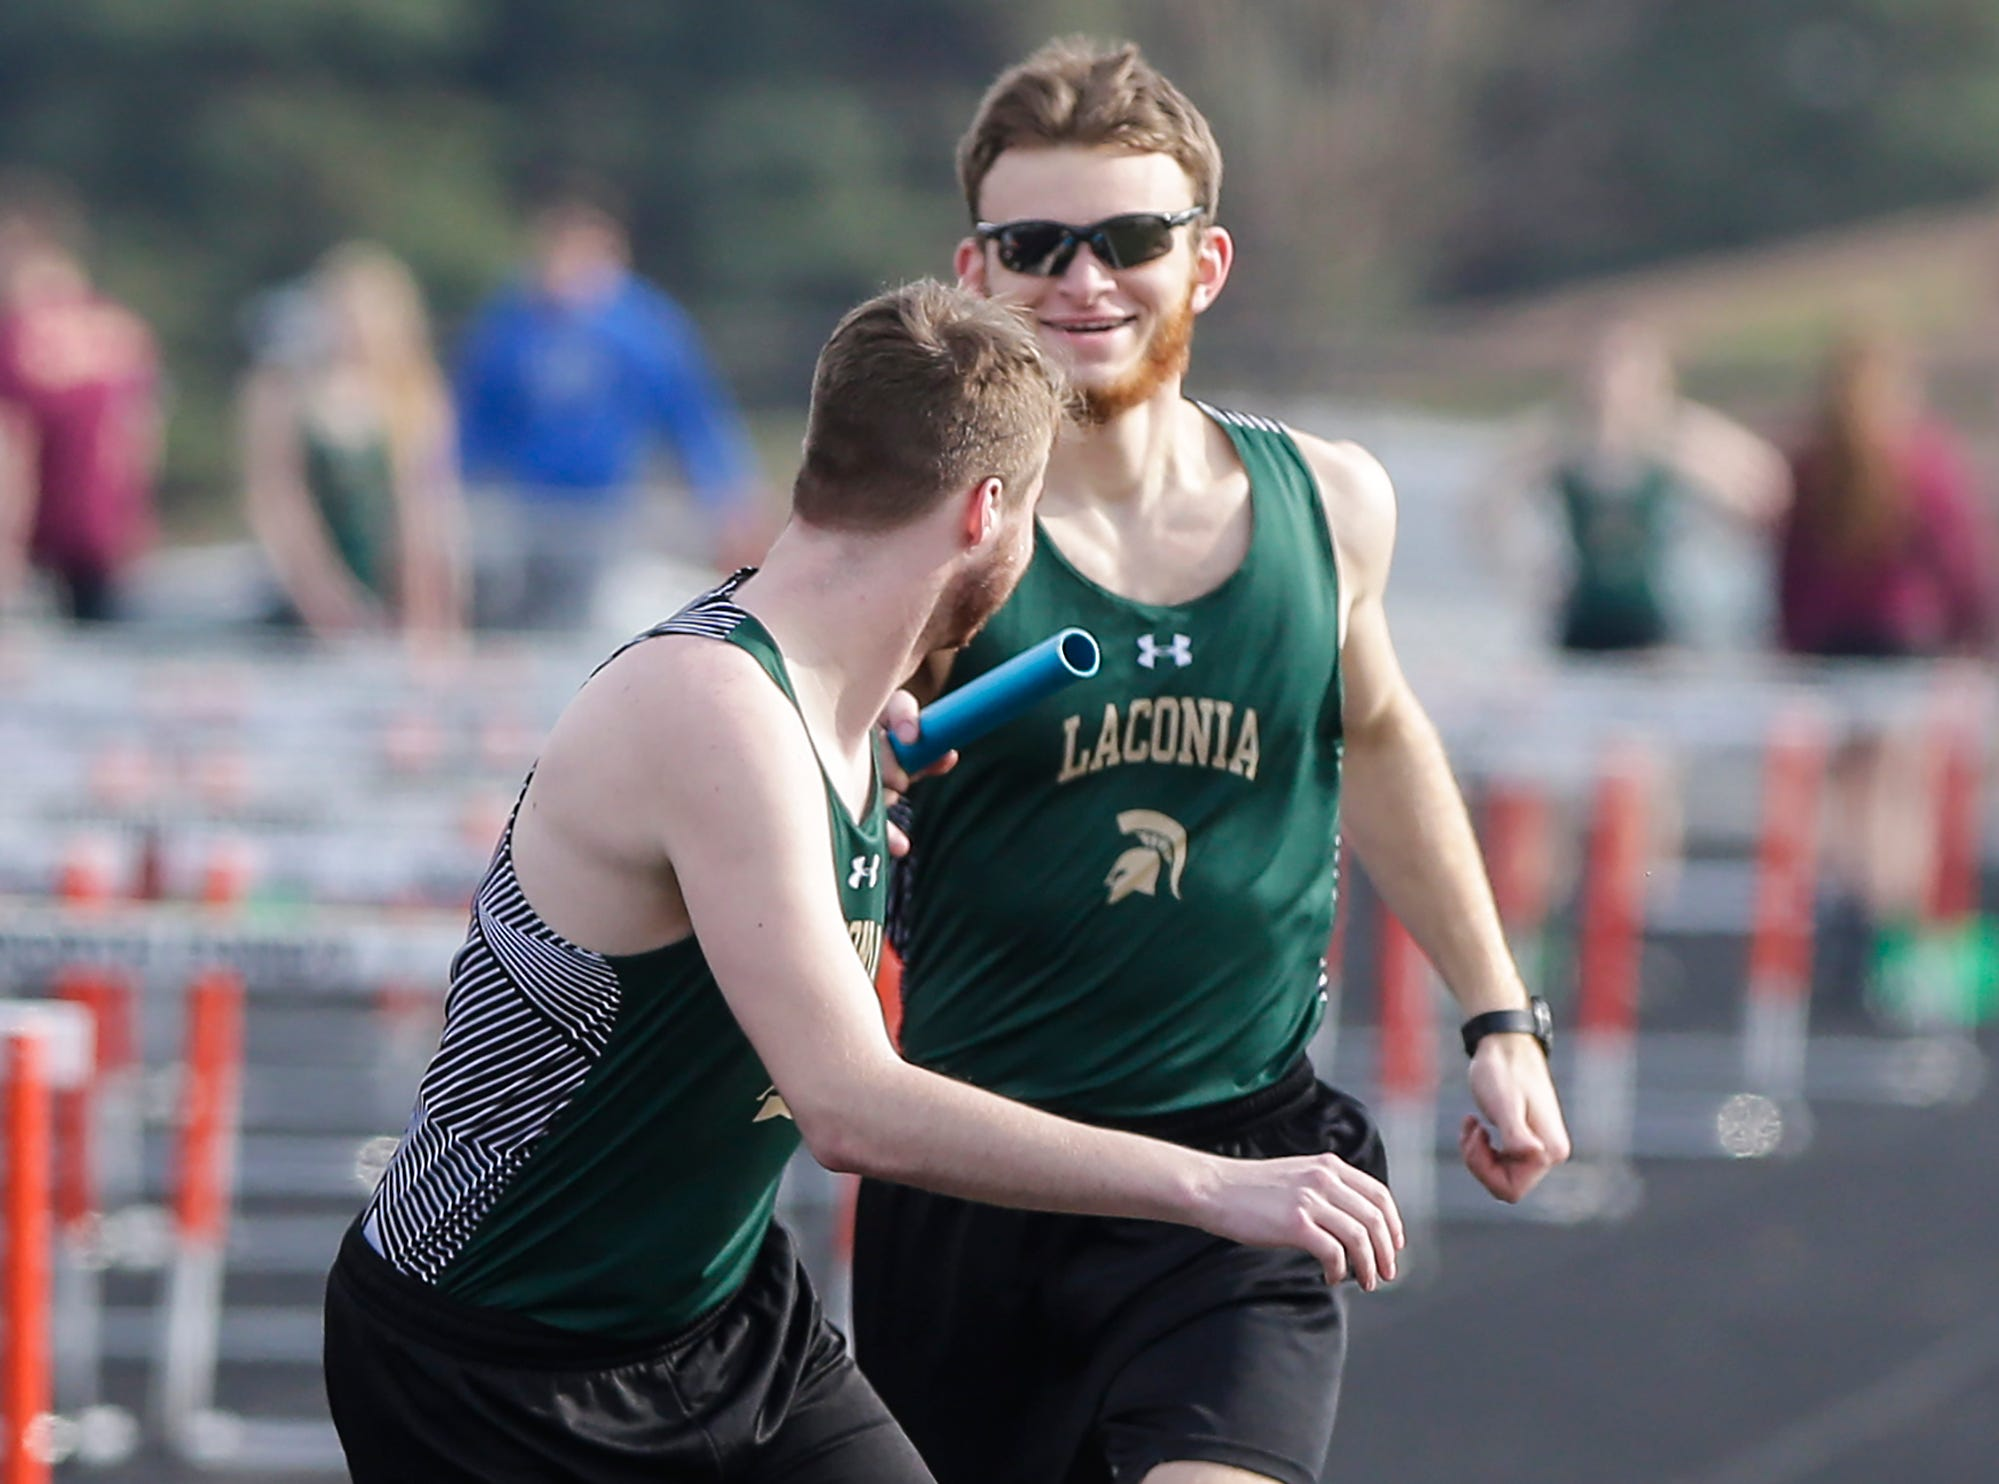 Laconia High School's Ben Pokorny hands the baton off to Jeb Loomans during the 4x800 meter relay Tuesday, April 16, 2019 at North Fond du Lac High School in North Fond du Lac, Wis. Doug Raflik/USA TODAY NETWORK-Wisconsin